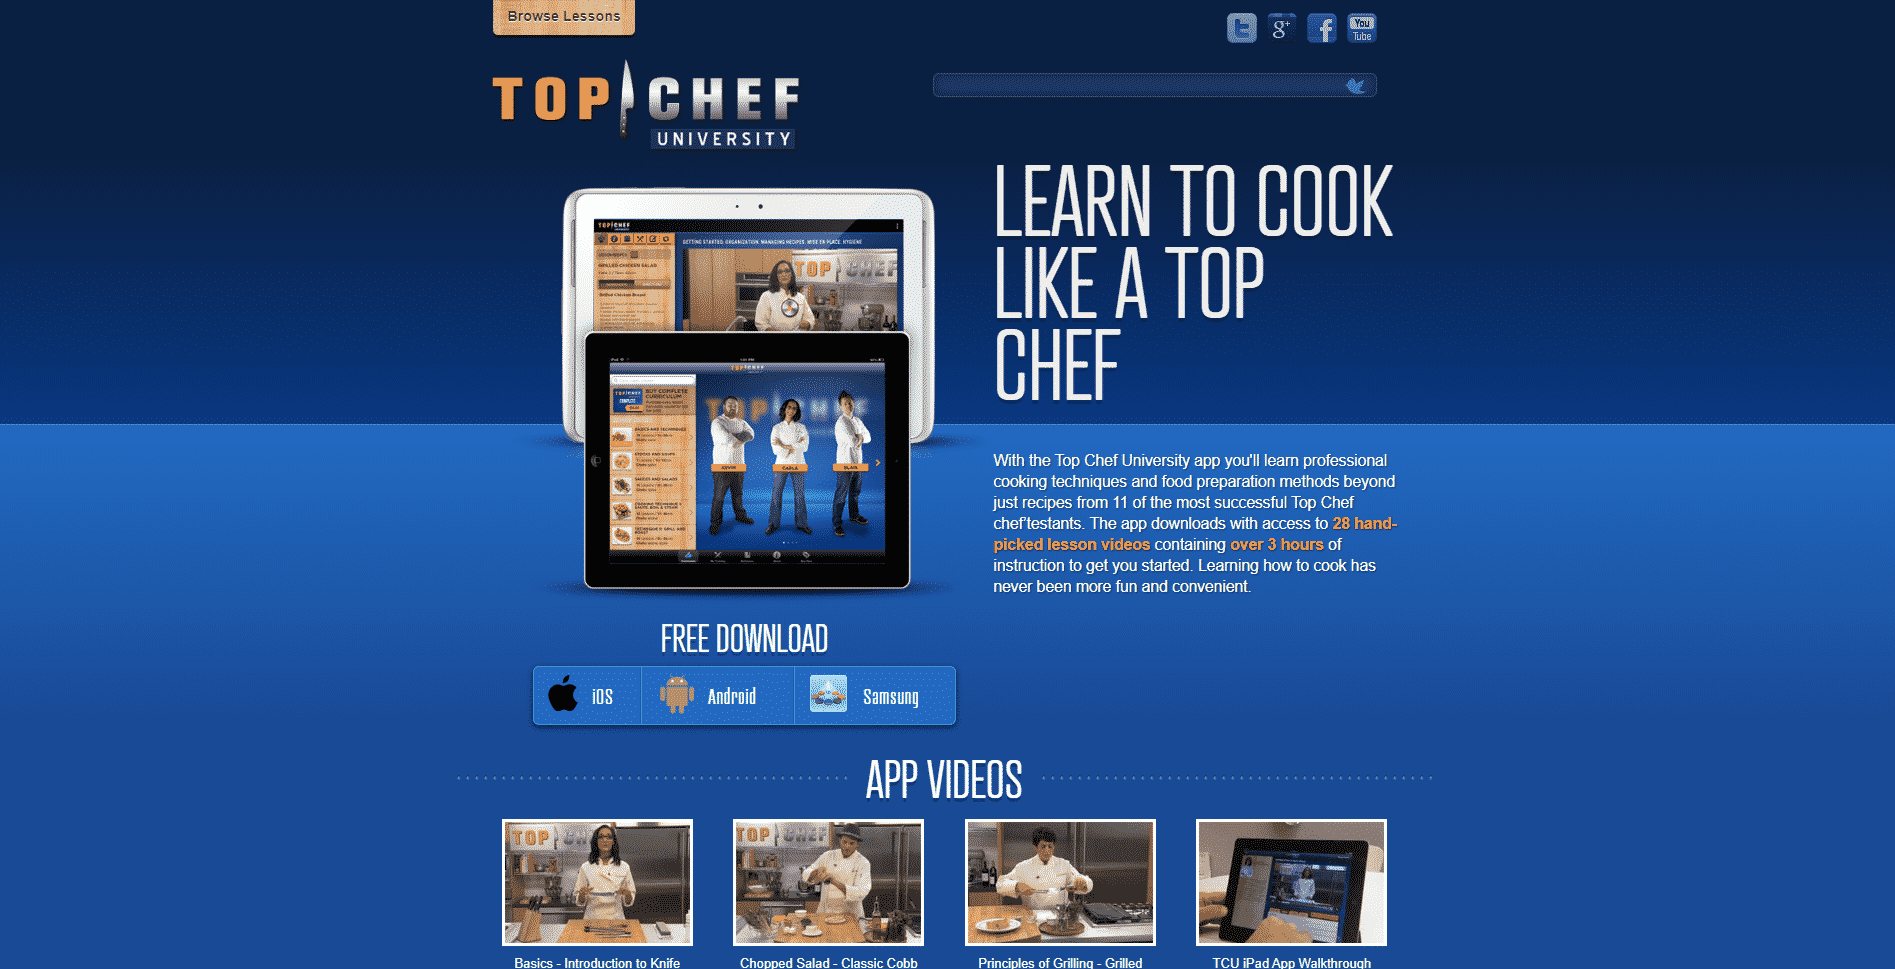 Top Chef University Learn Cooking Lessons Online